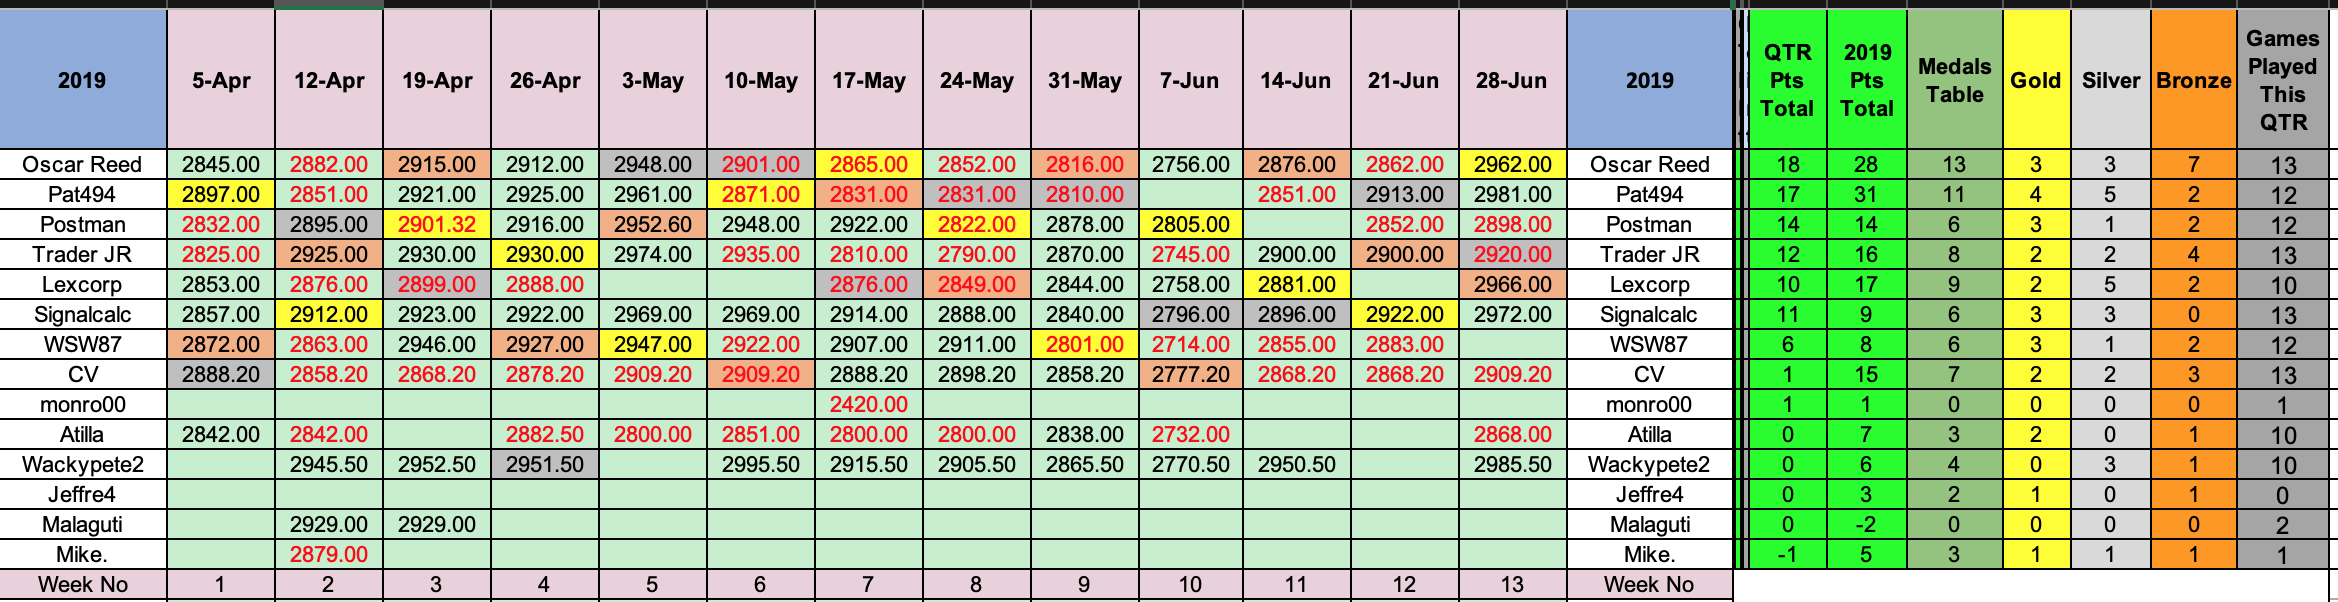 SP500 Q2 2019 results.png